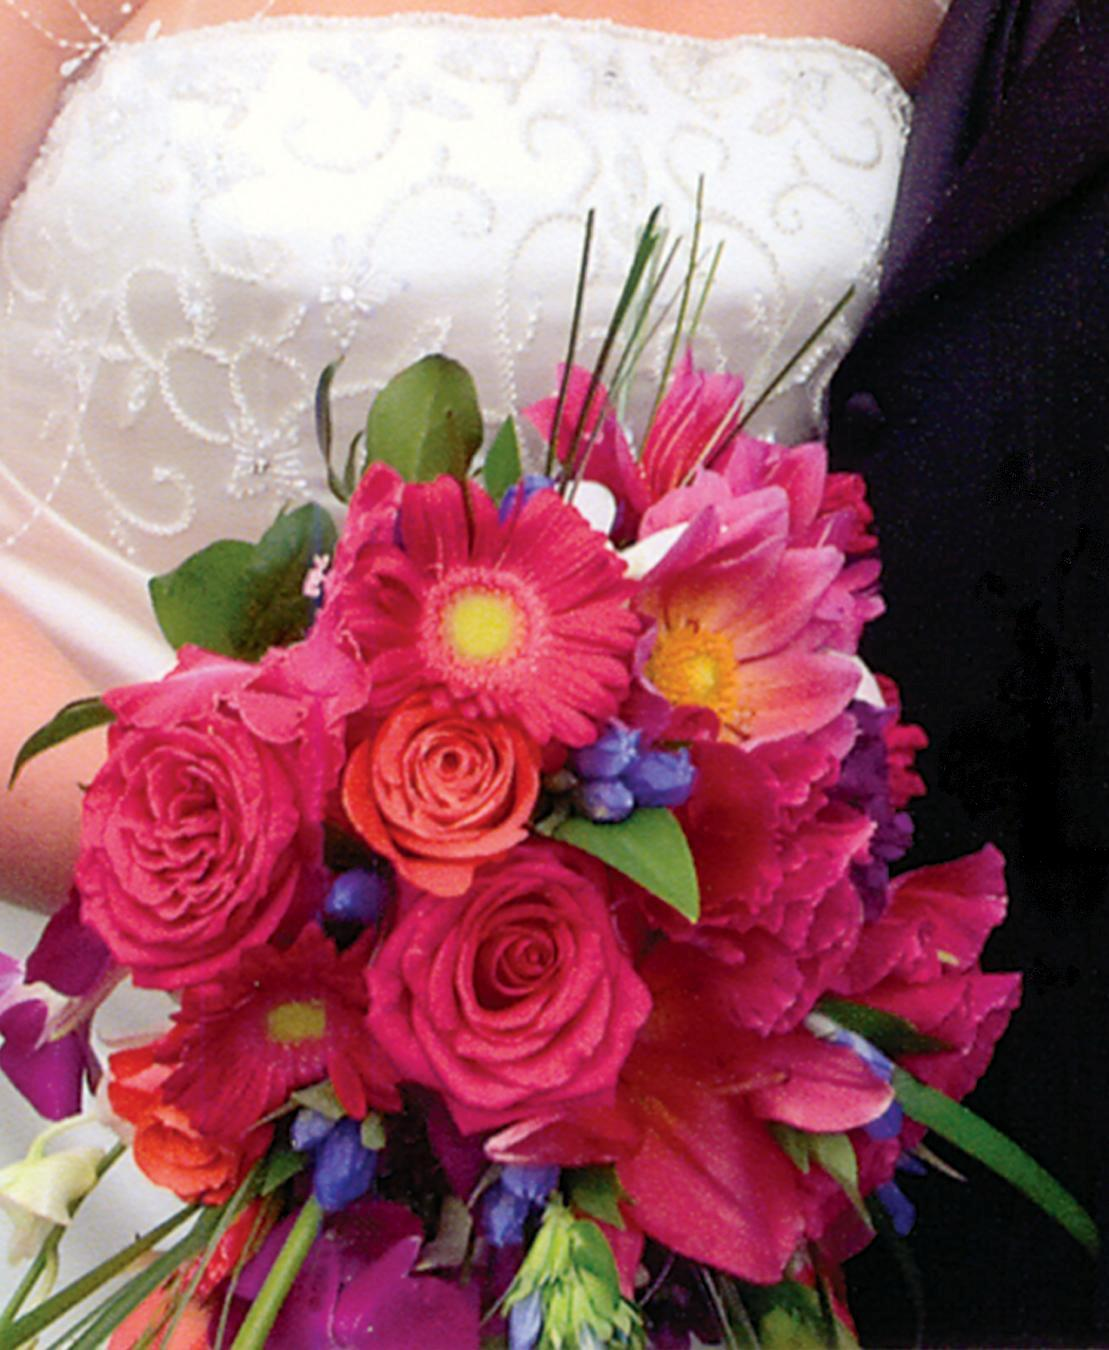 About marriage marriage flower bouquet 2013 wedding flower bouquet ideas 2014 - Flowers good luck bridal bouquet ...